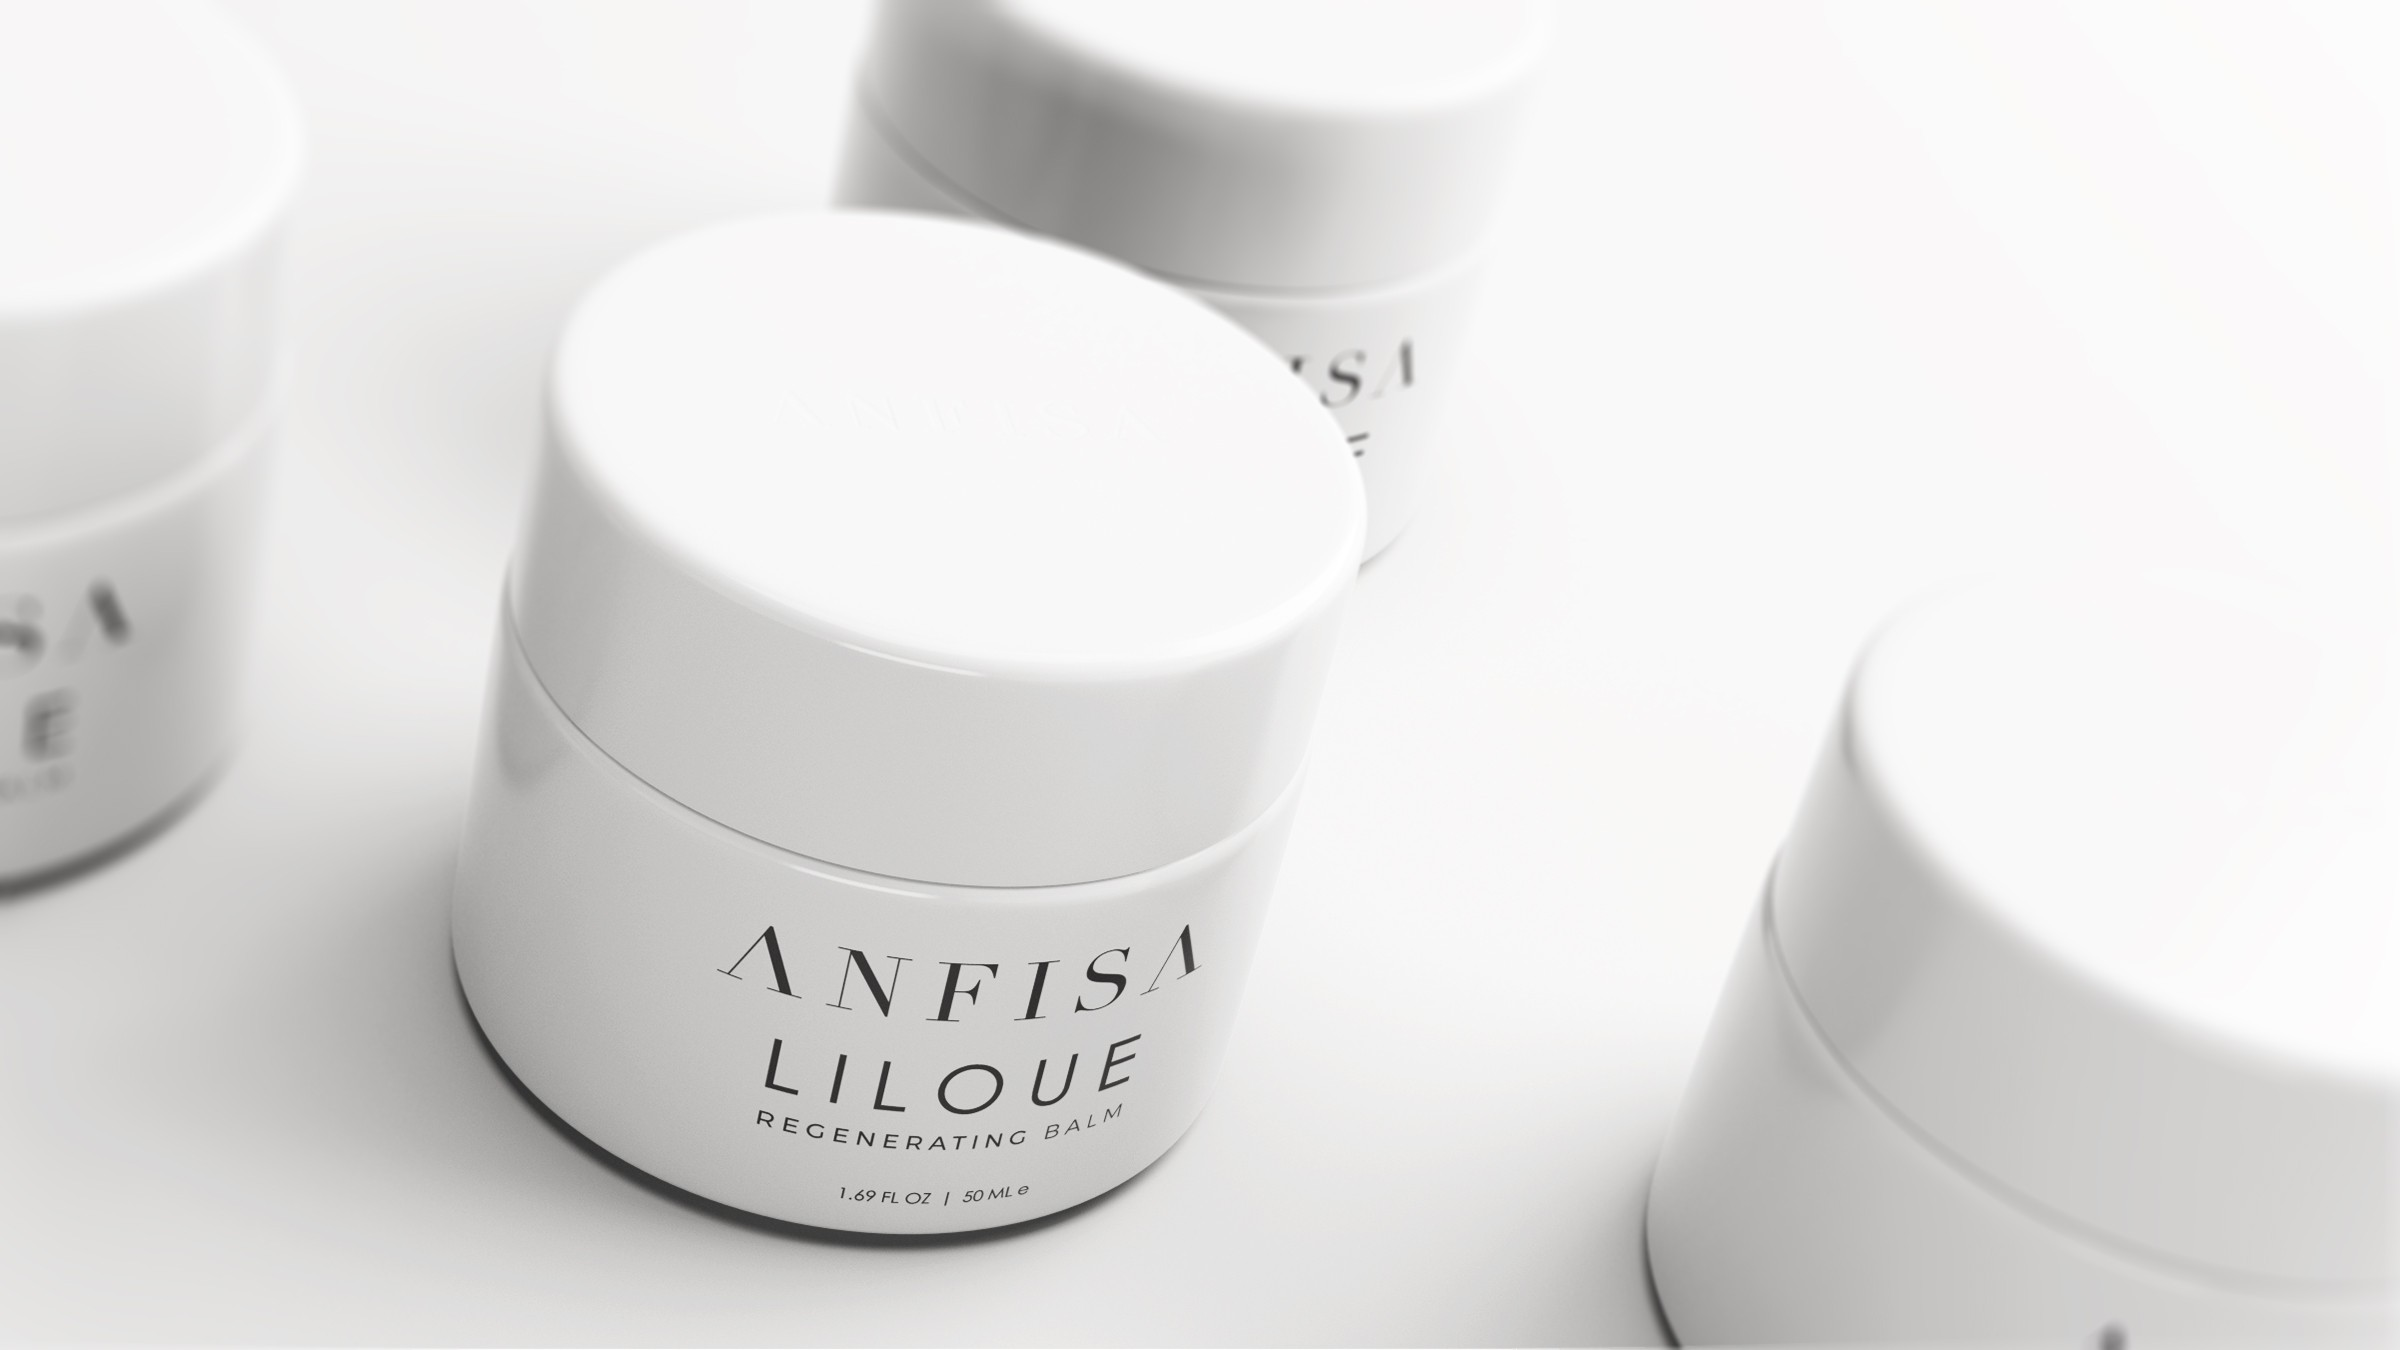 Need a clean, minimalist & luxury package design for a skincare line